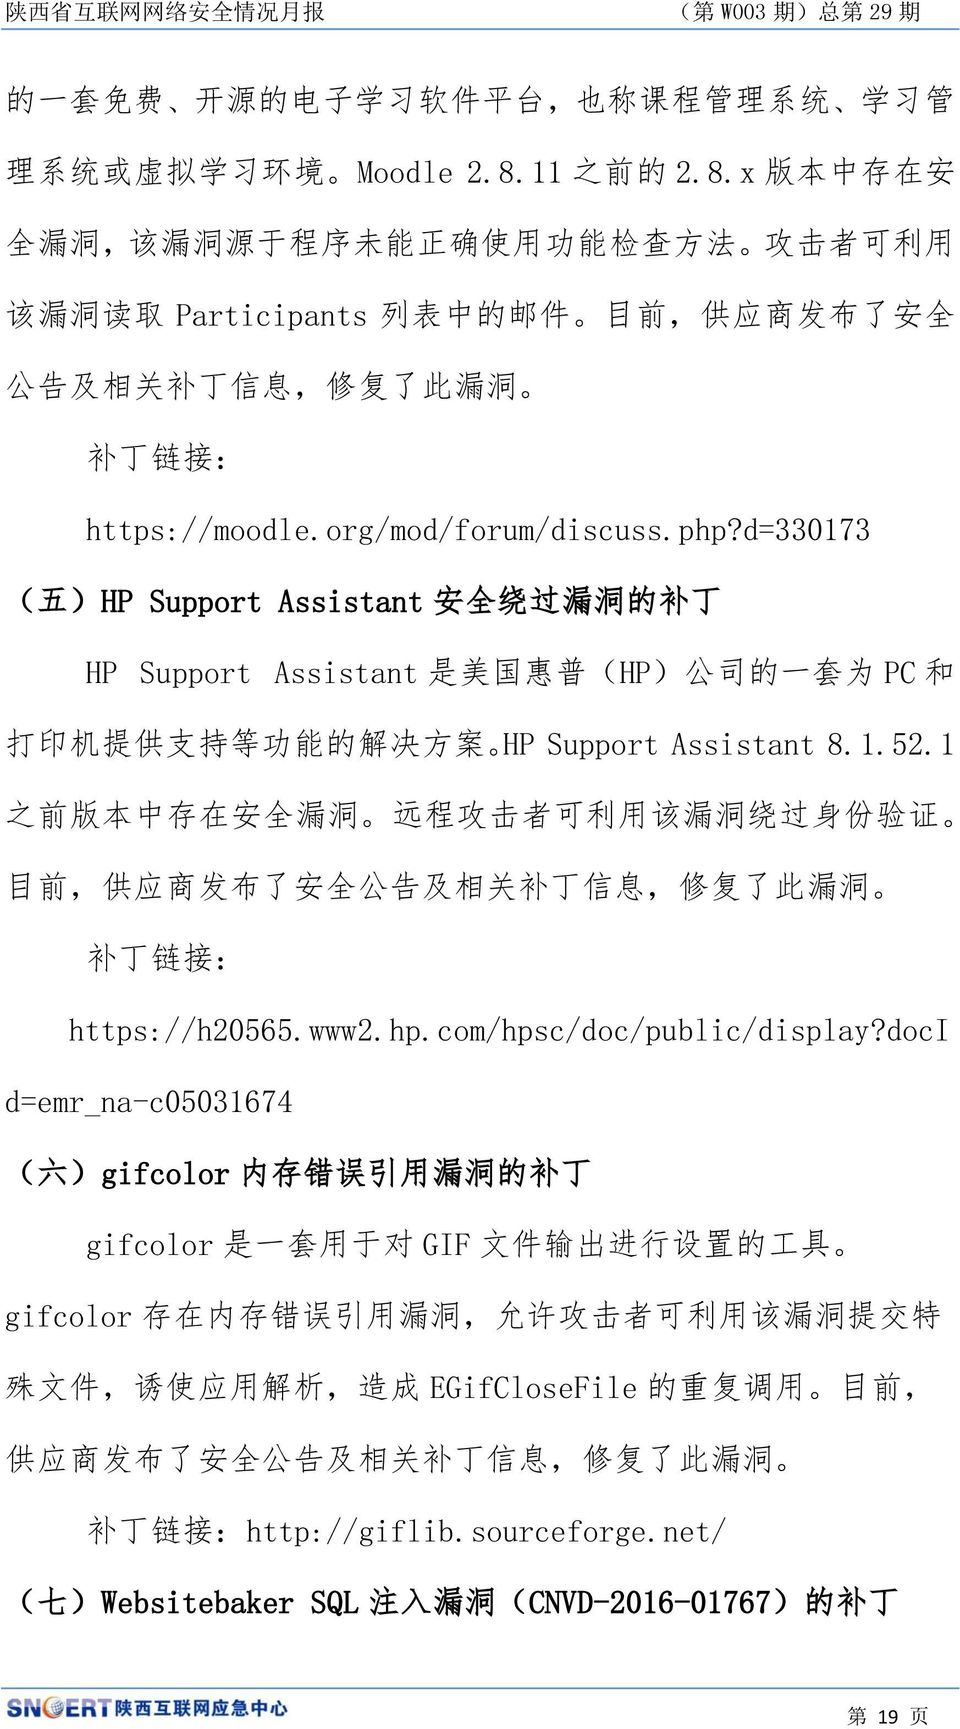 org/mod/forum/discuss.php?d=330173 ( 五 )HP Support Assistant 安 全 绕 过 漏 洞 的 补 丁 HP Support Assistant 是 美 国 惠 普 (HP) 公 司 的 一 套 为 PC 和 打 印 机 提 供 支 持 等 功 能 的 解 决 方 案 HP Support Assistant 8.1.52.